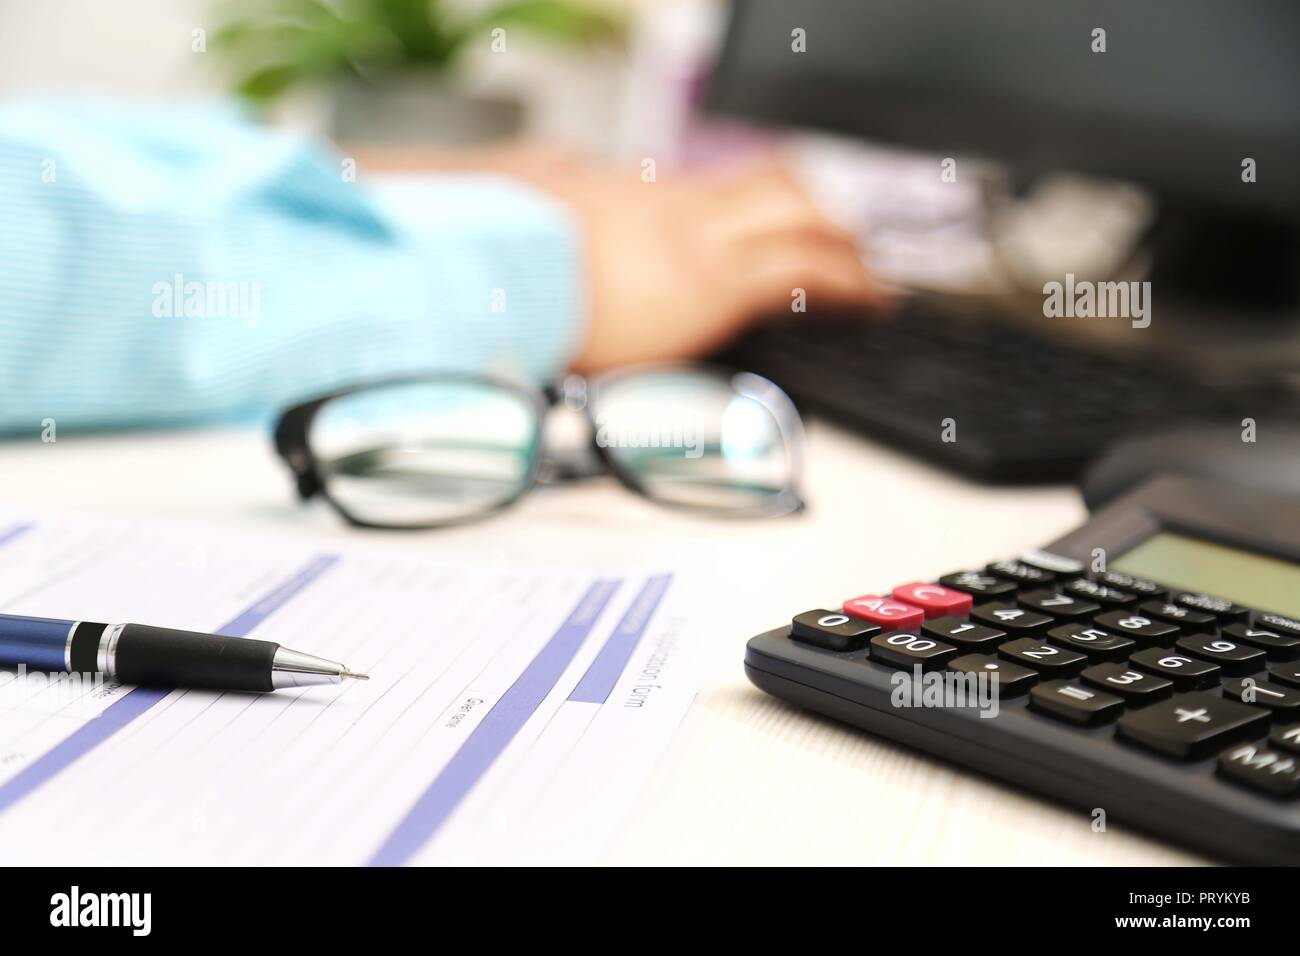 Picture of man hand is typing on keyboard. Picture of application form, pen, calculator and glasses. - Stock Image